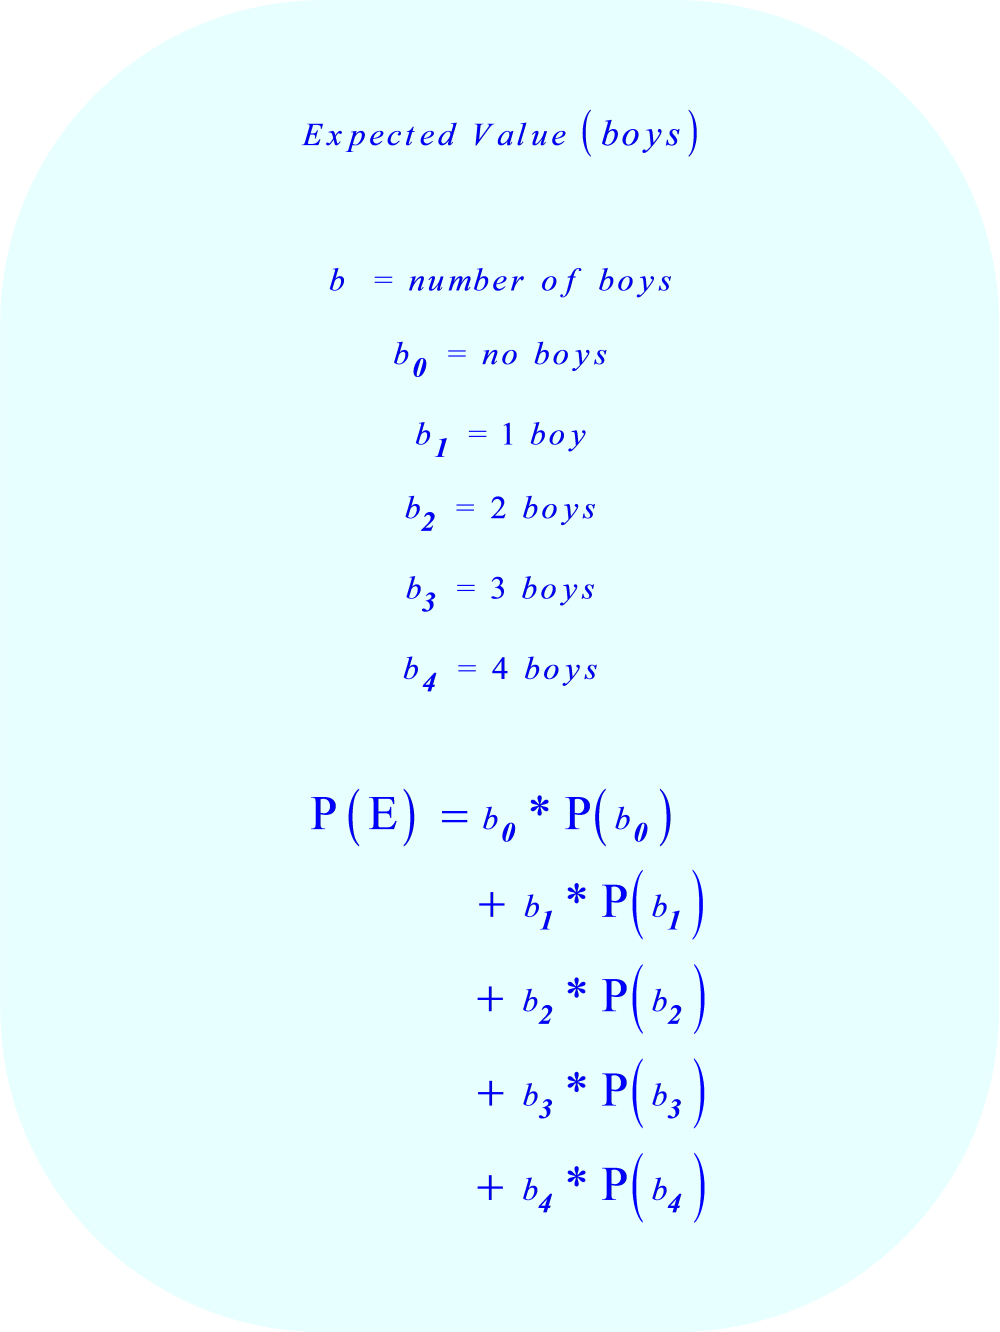 Expected value formula for number of boys in a family